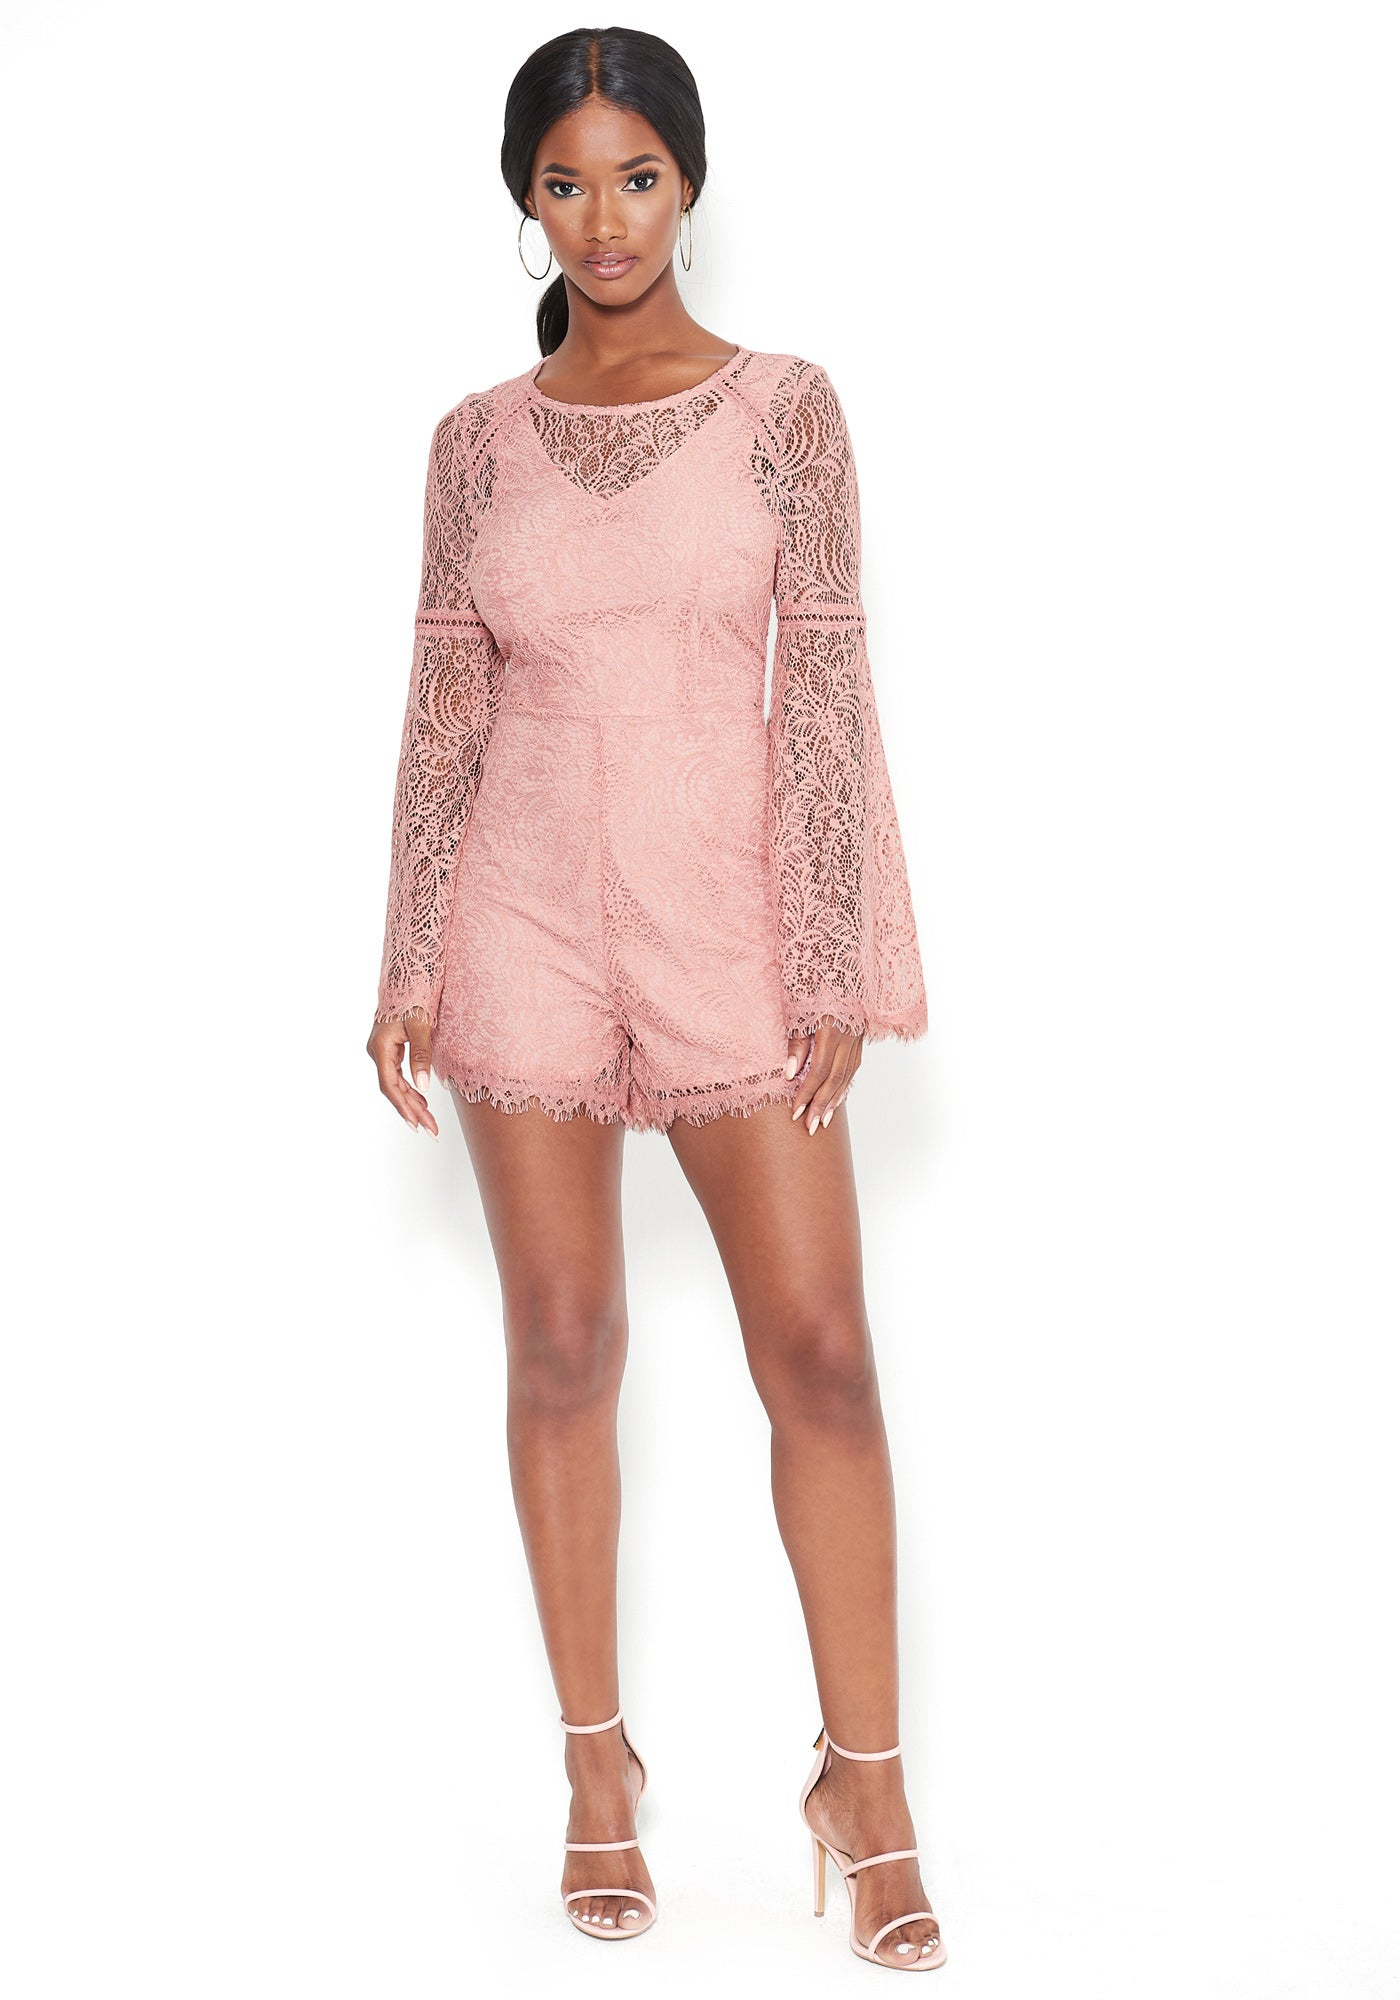 Bebe Women's Lace Flare Sleeve Romper, Size 00 in Mitsy Rose Polyester